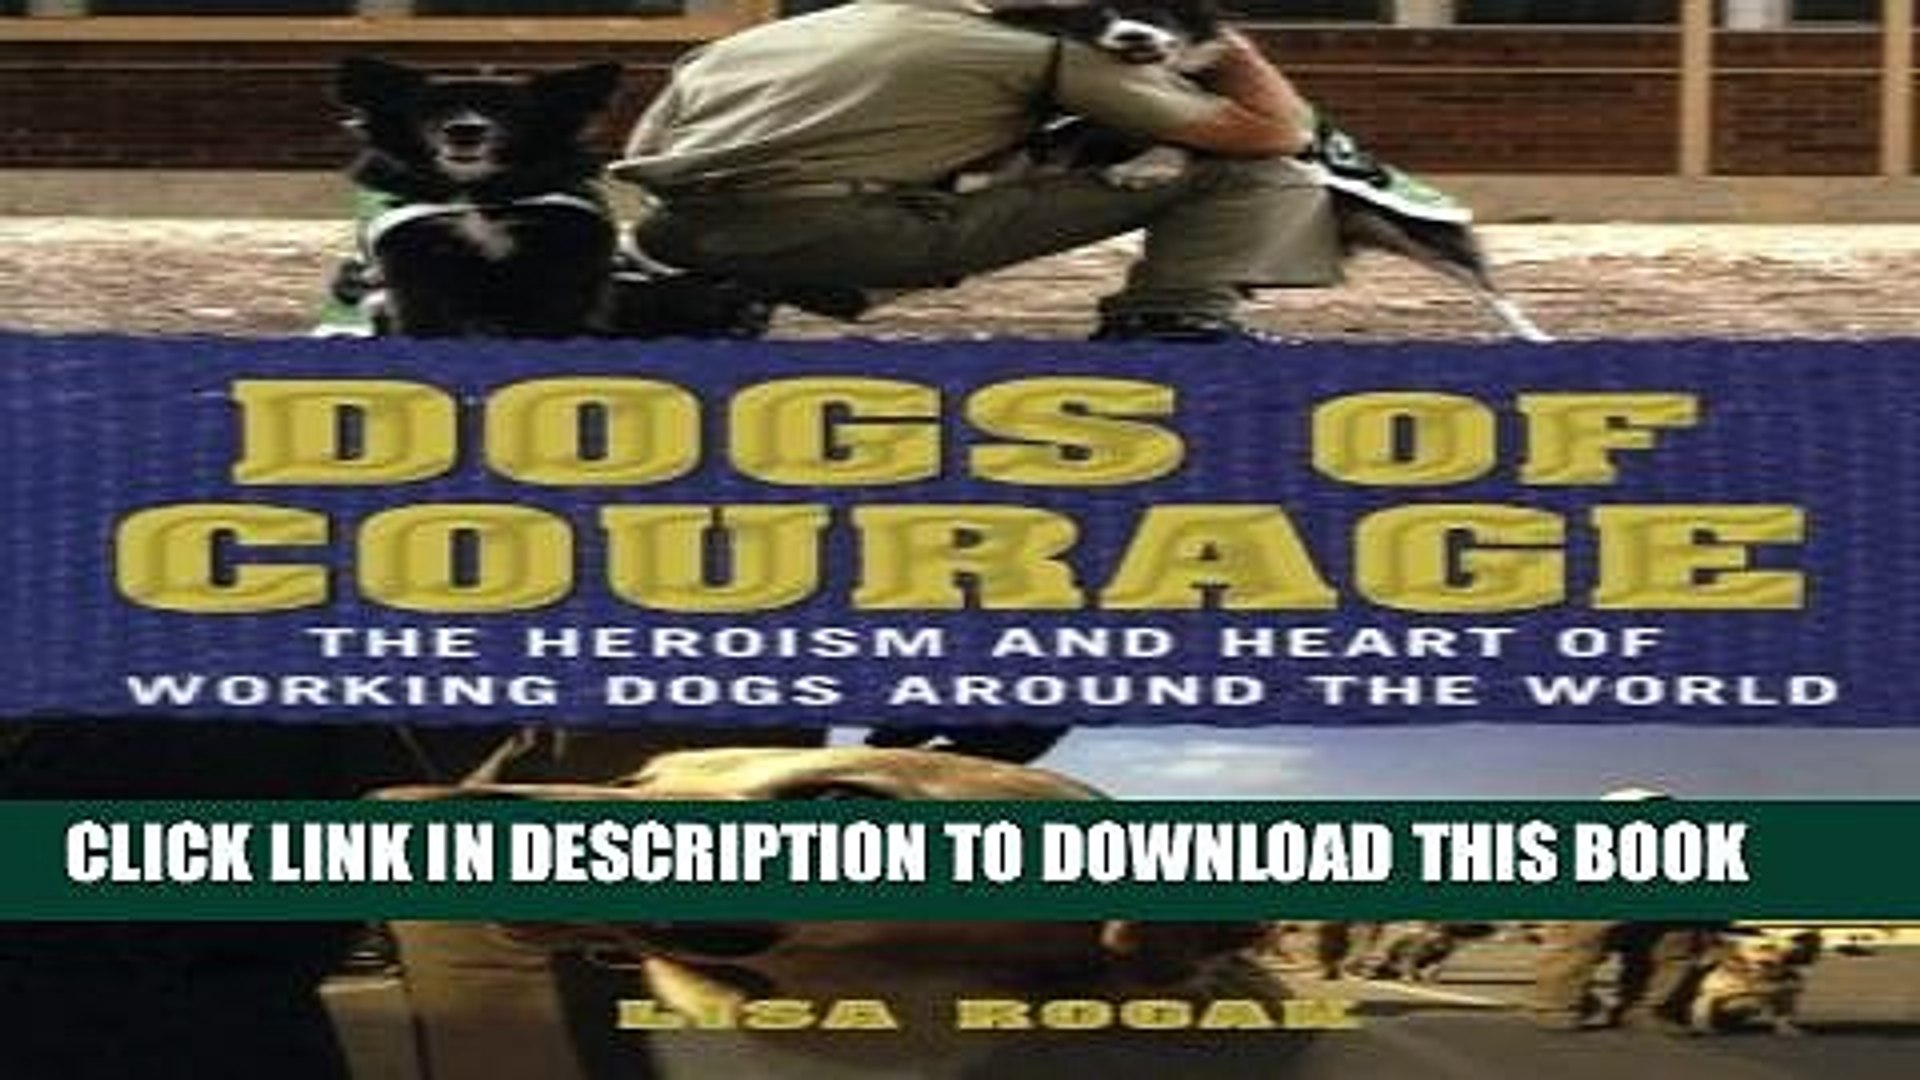 [PDF] Dogs of Courage: The Heroism and Heart of Working Dogs Around the World Popular Online